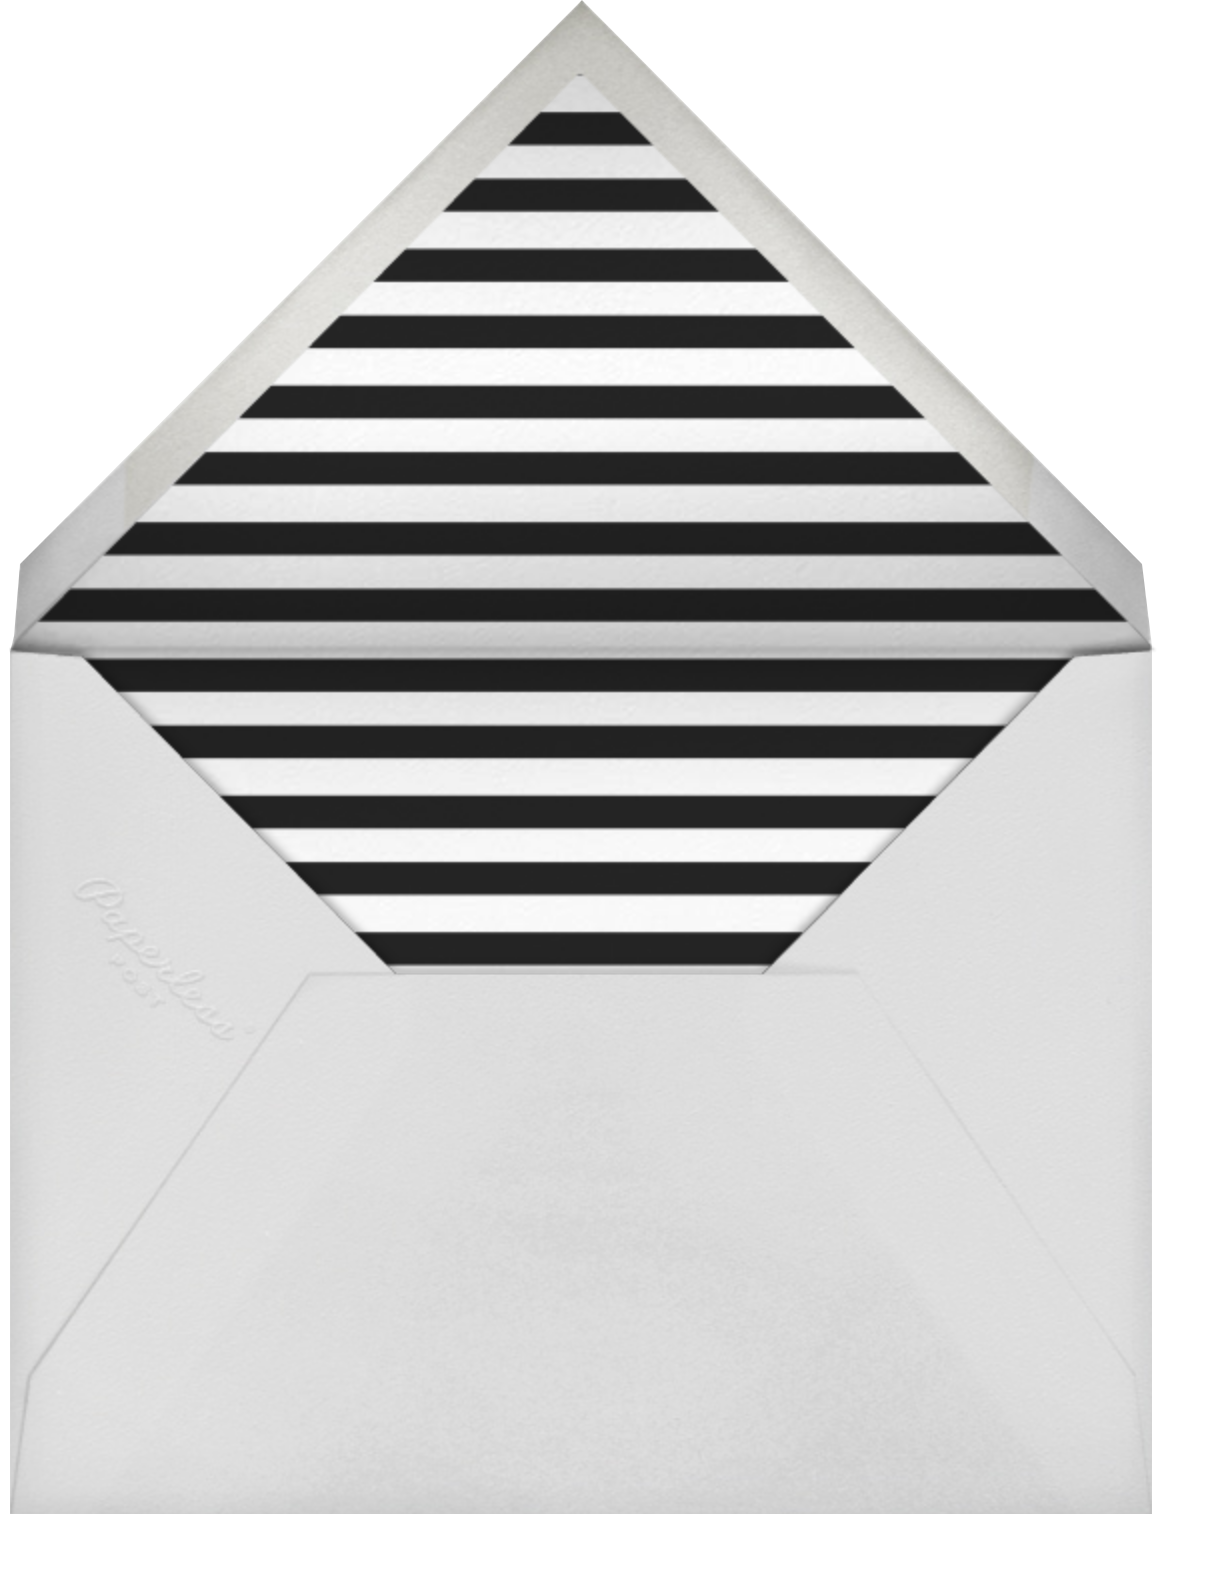 City Lights II (Save the Date) - White/Black - kate spade new york - Save the date - envelope back